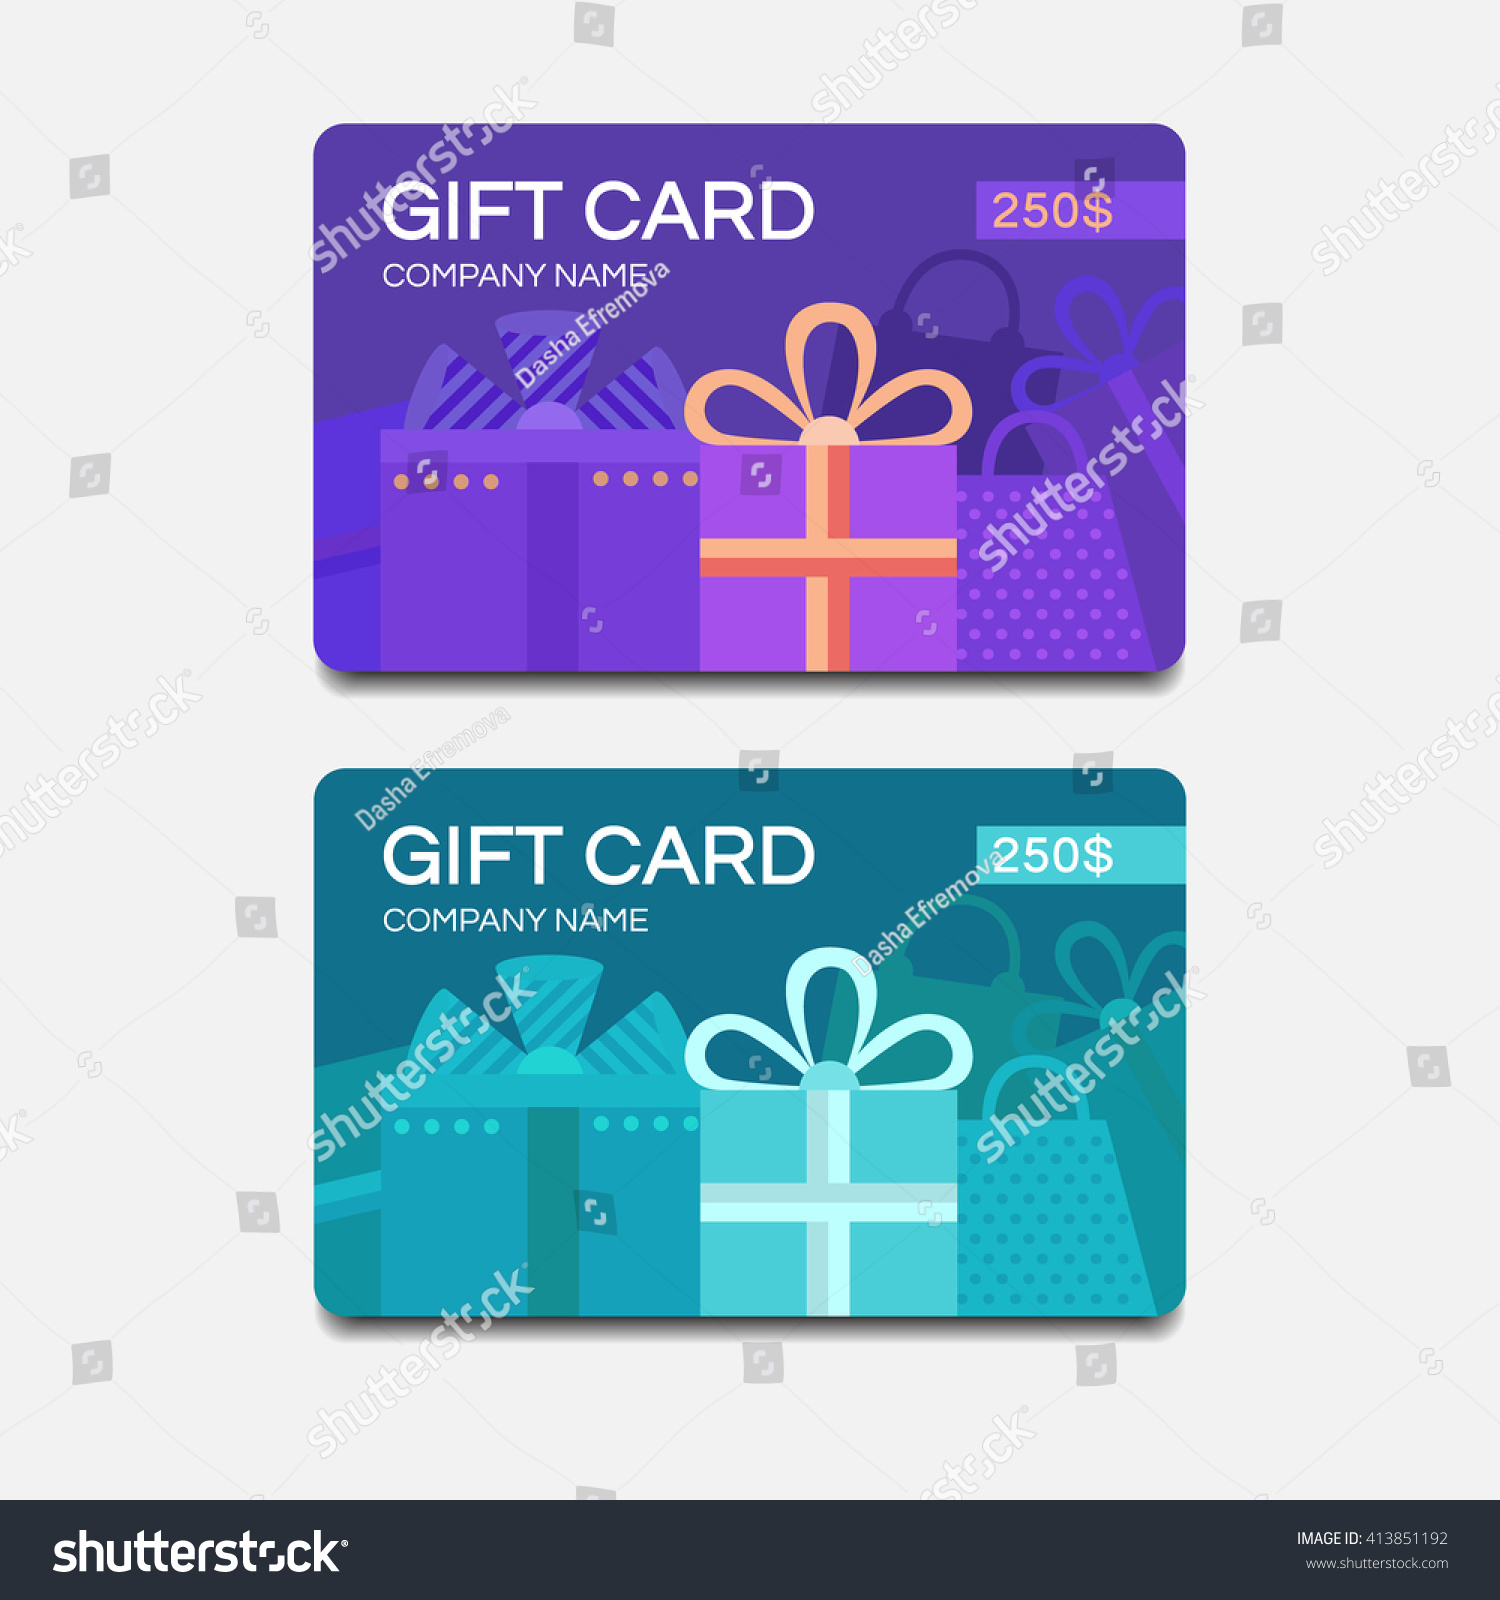 gift card template discount coupon vector stock vector 413851192 shutterstock. Black Bedroom Furniture Sets. Home Design Ideas